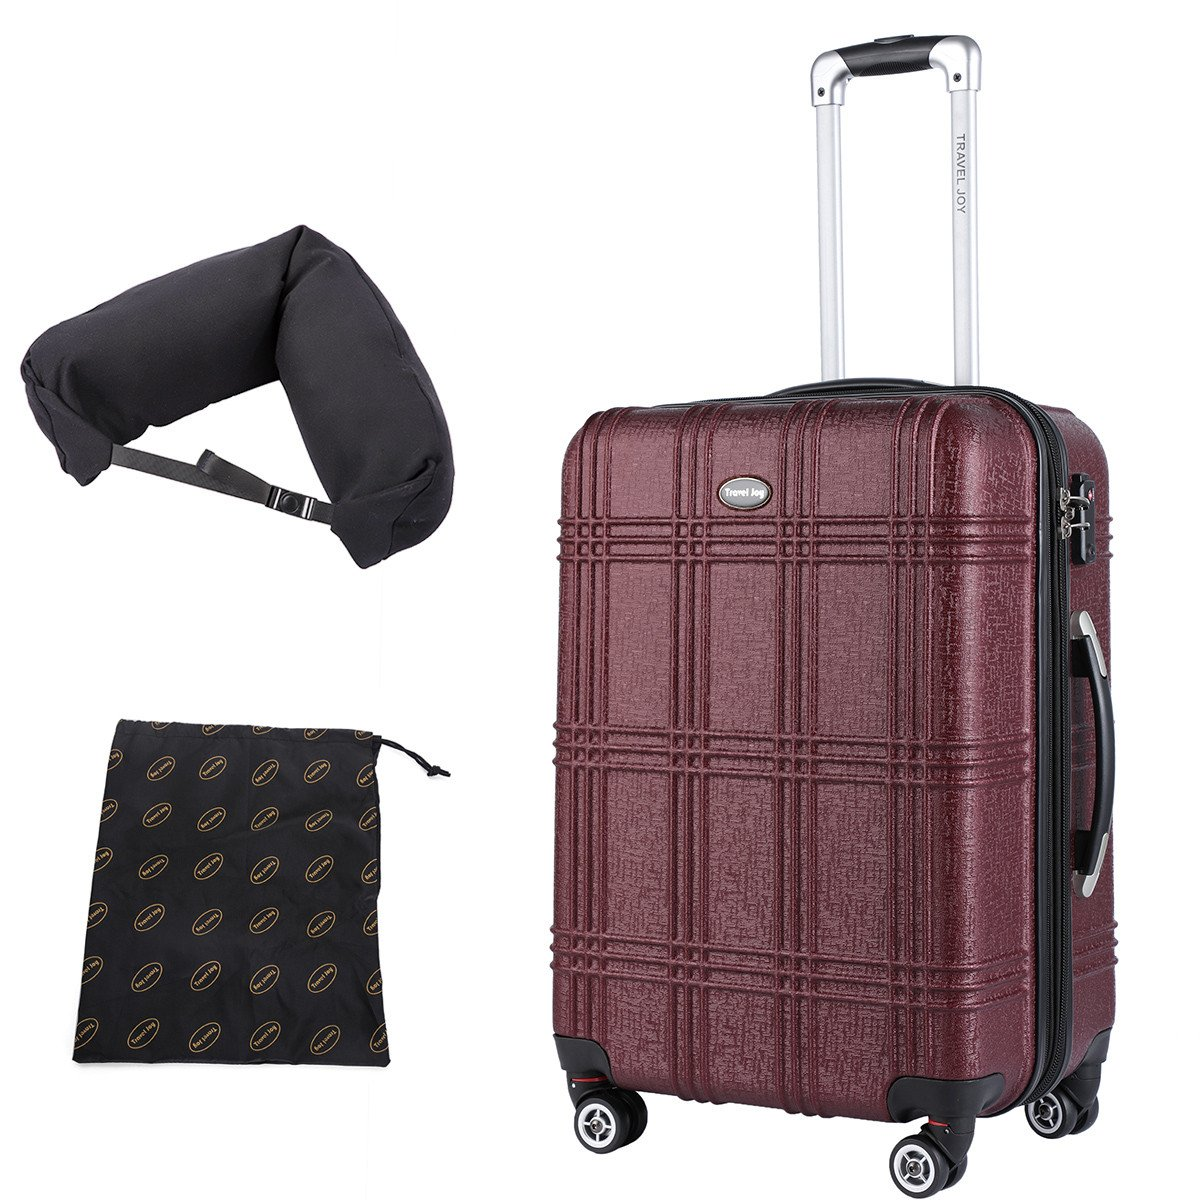 Expandable Carry On Luggage Lightweight Spinner Carry Ons TSA Hardside Luggage Suitcase, 20 inches (BURGUNDY) by Travel Joy (Image #1)